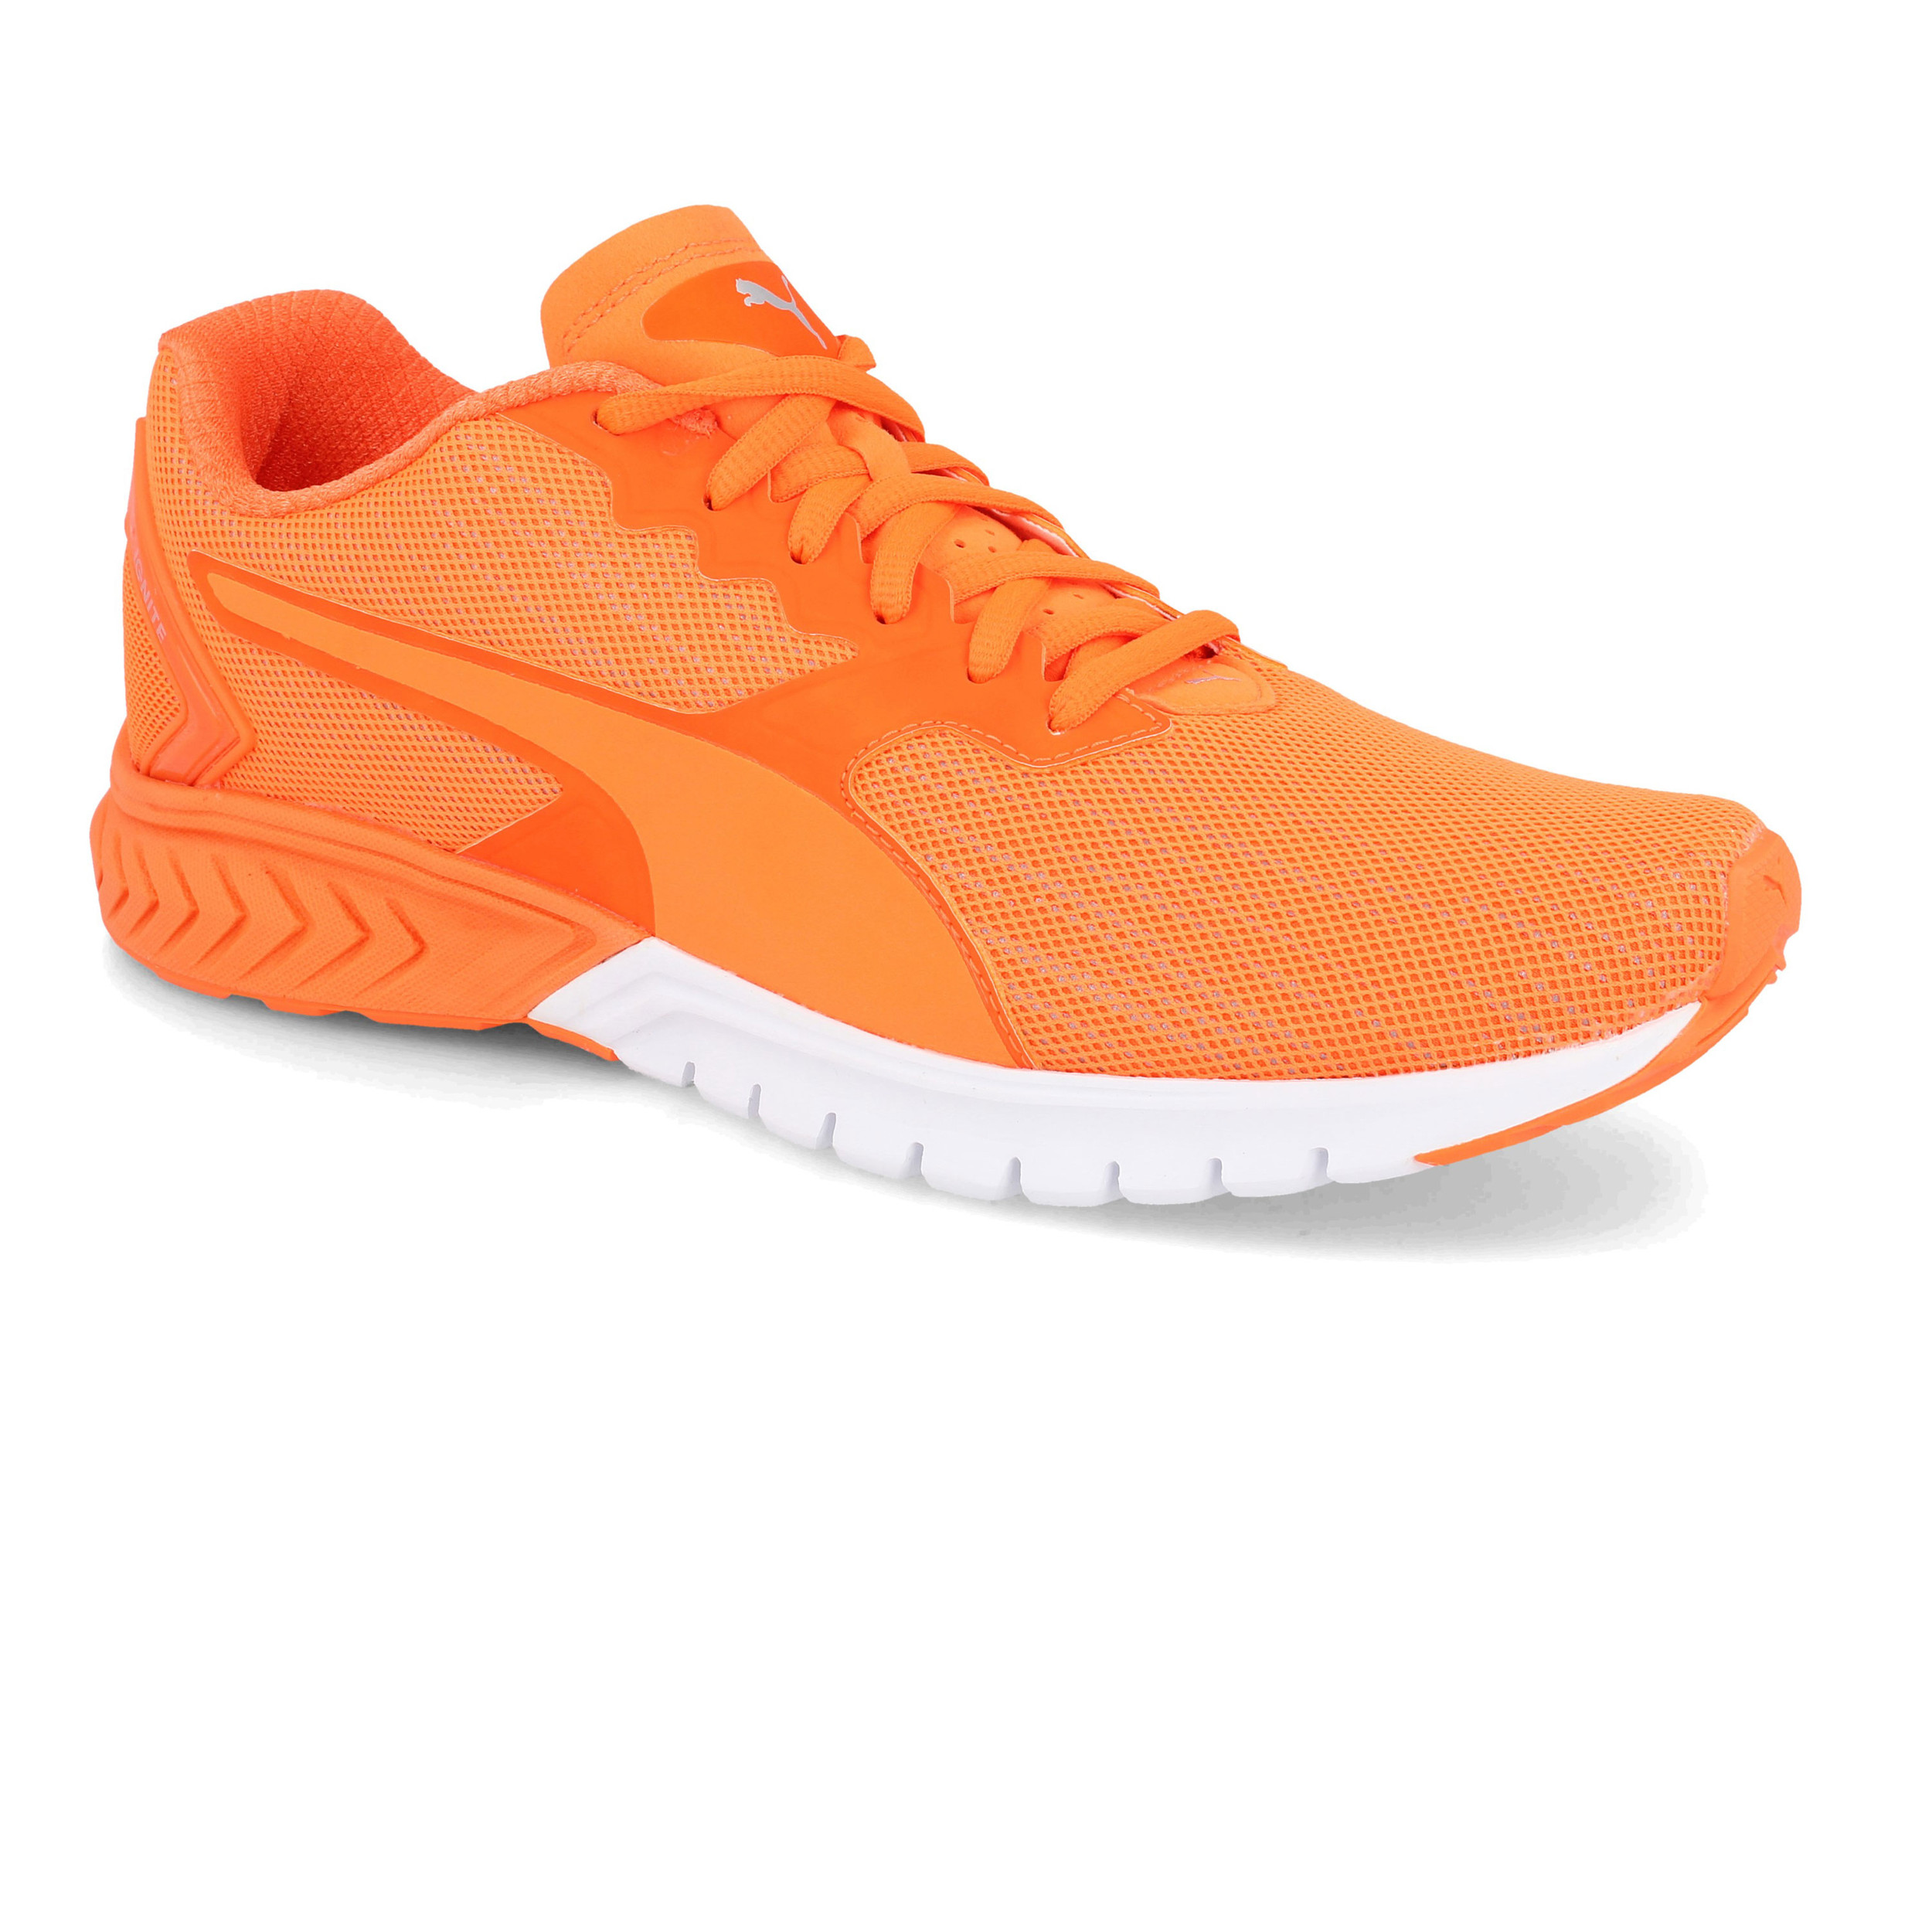 Details about Puma Mens Ignite Dual Nightcat Running Shoes Trainers Sneakers Orange Sports